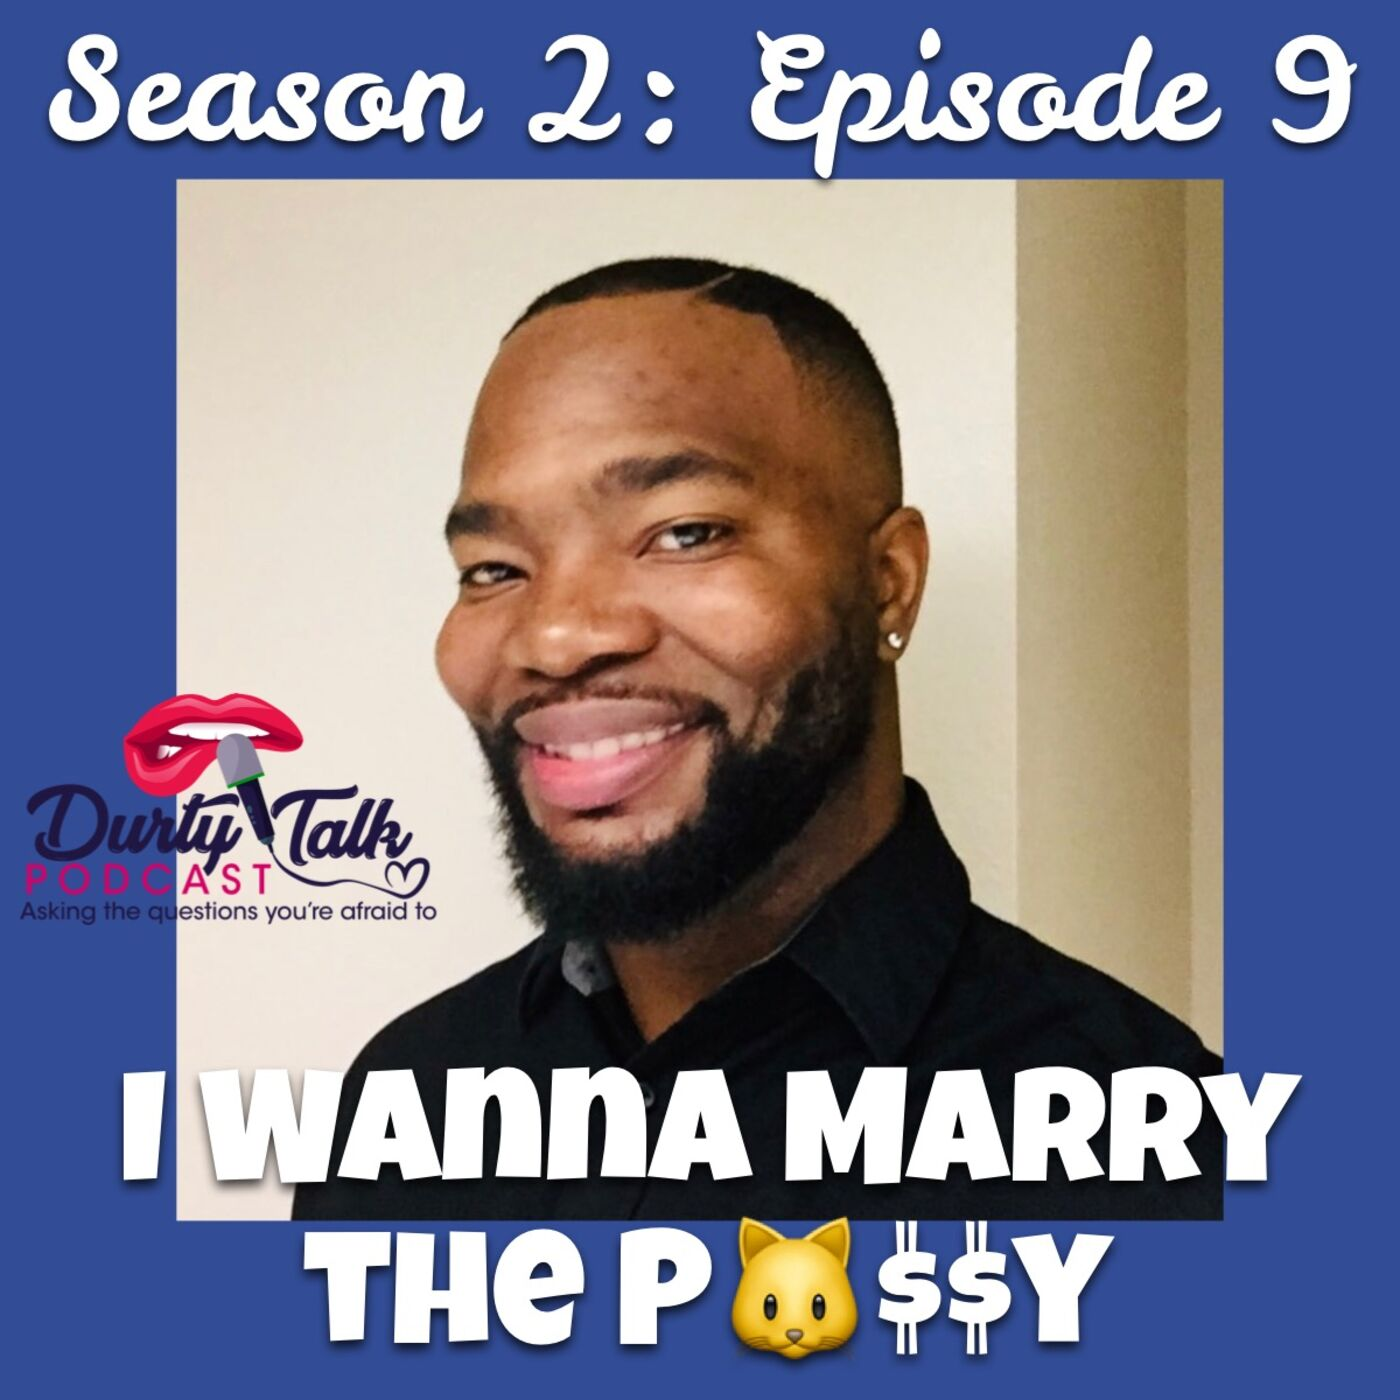 I Wanna Marry the P^$$y- S2:E9